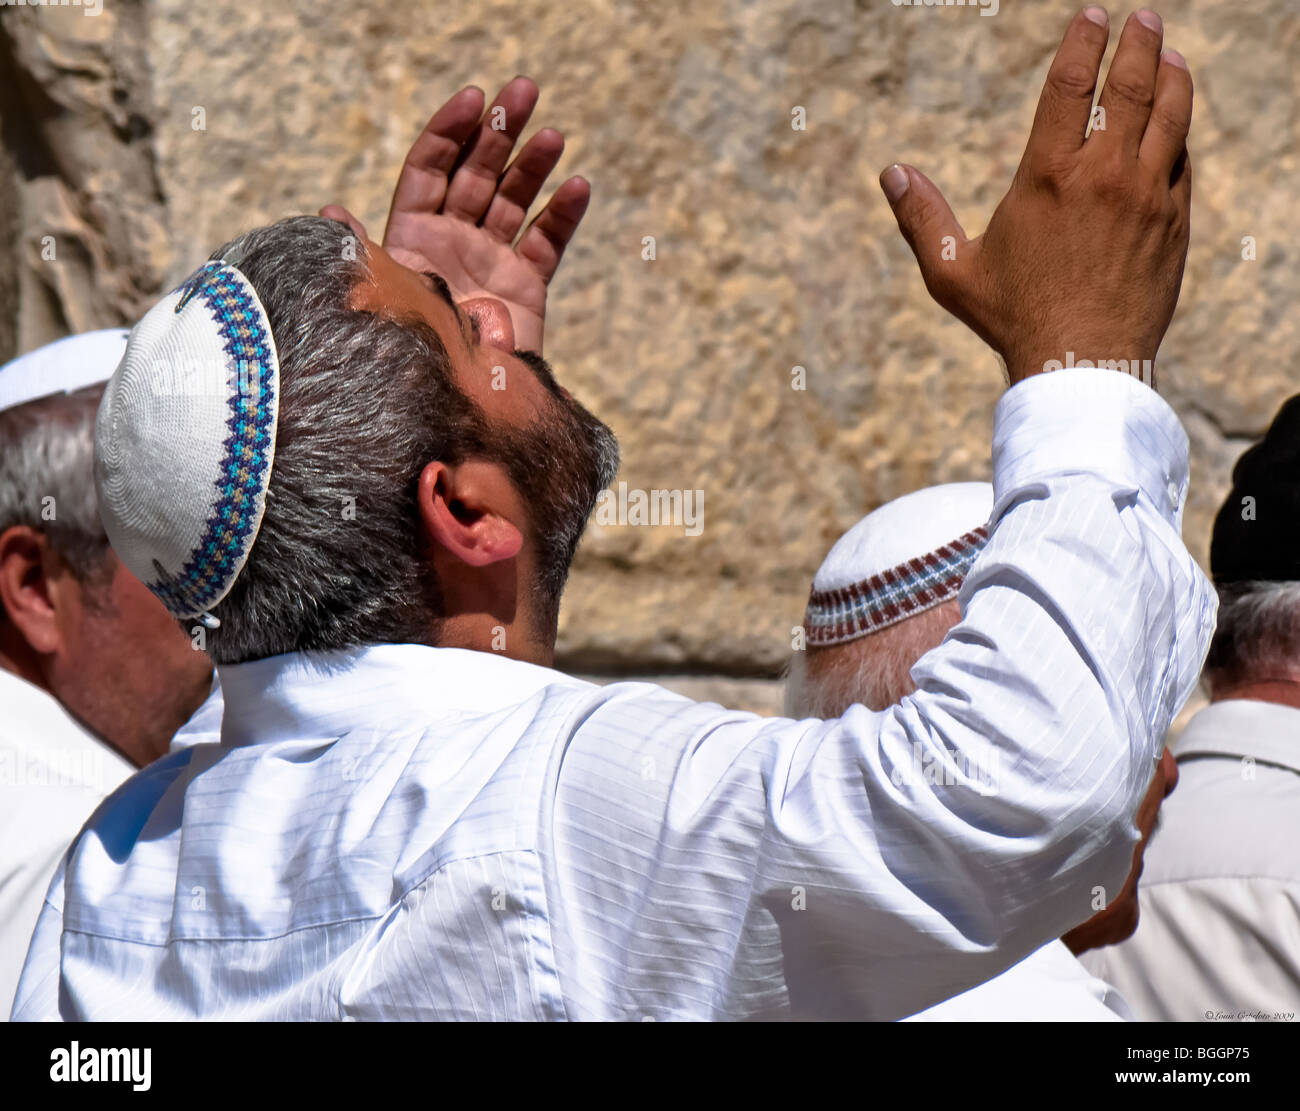 Religious Jewish man praying at the Wailing wall in Jerusalem the most holy site - Stock Image